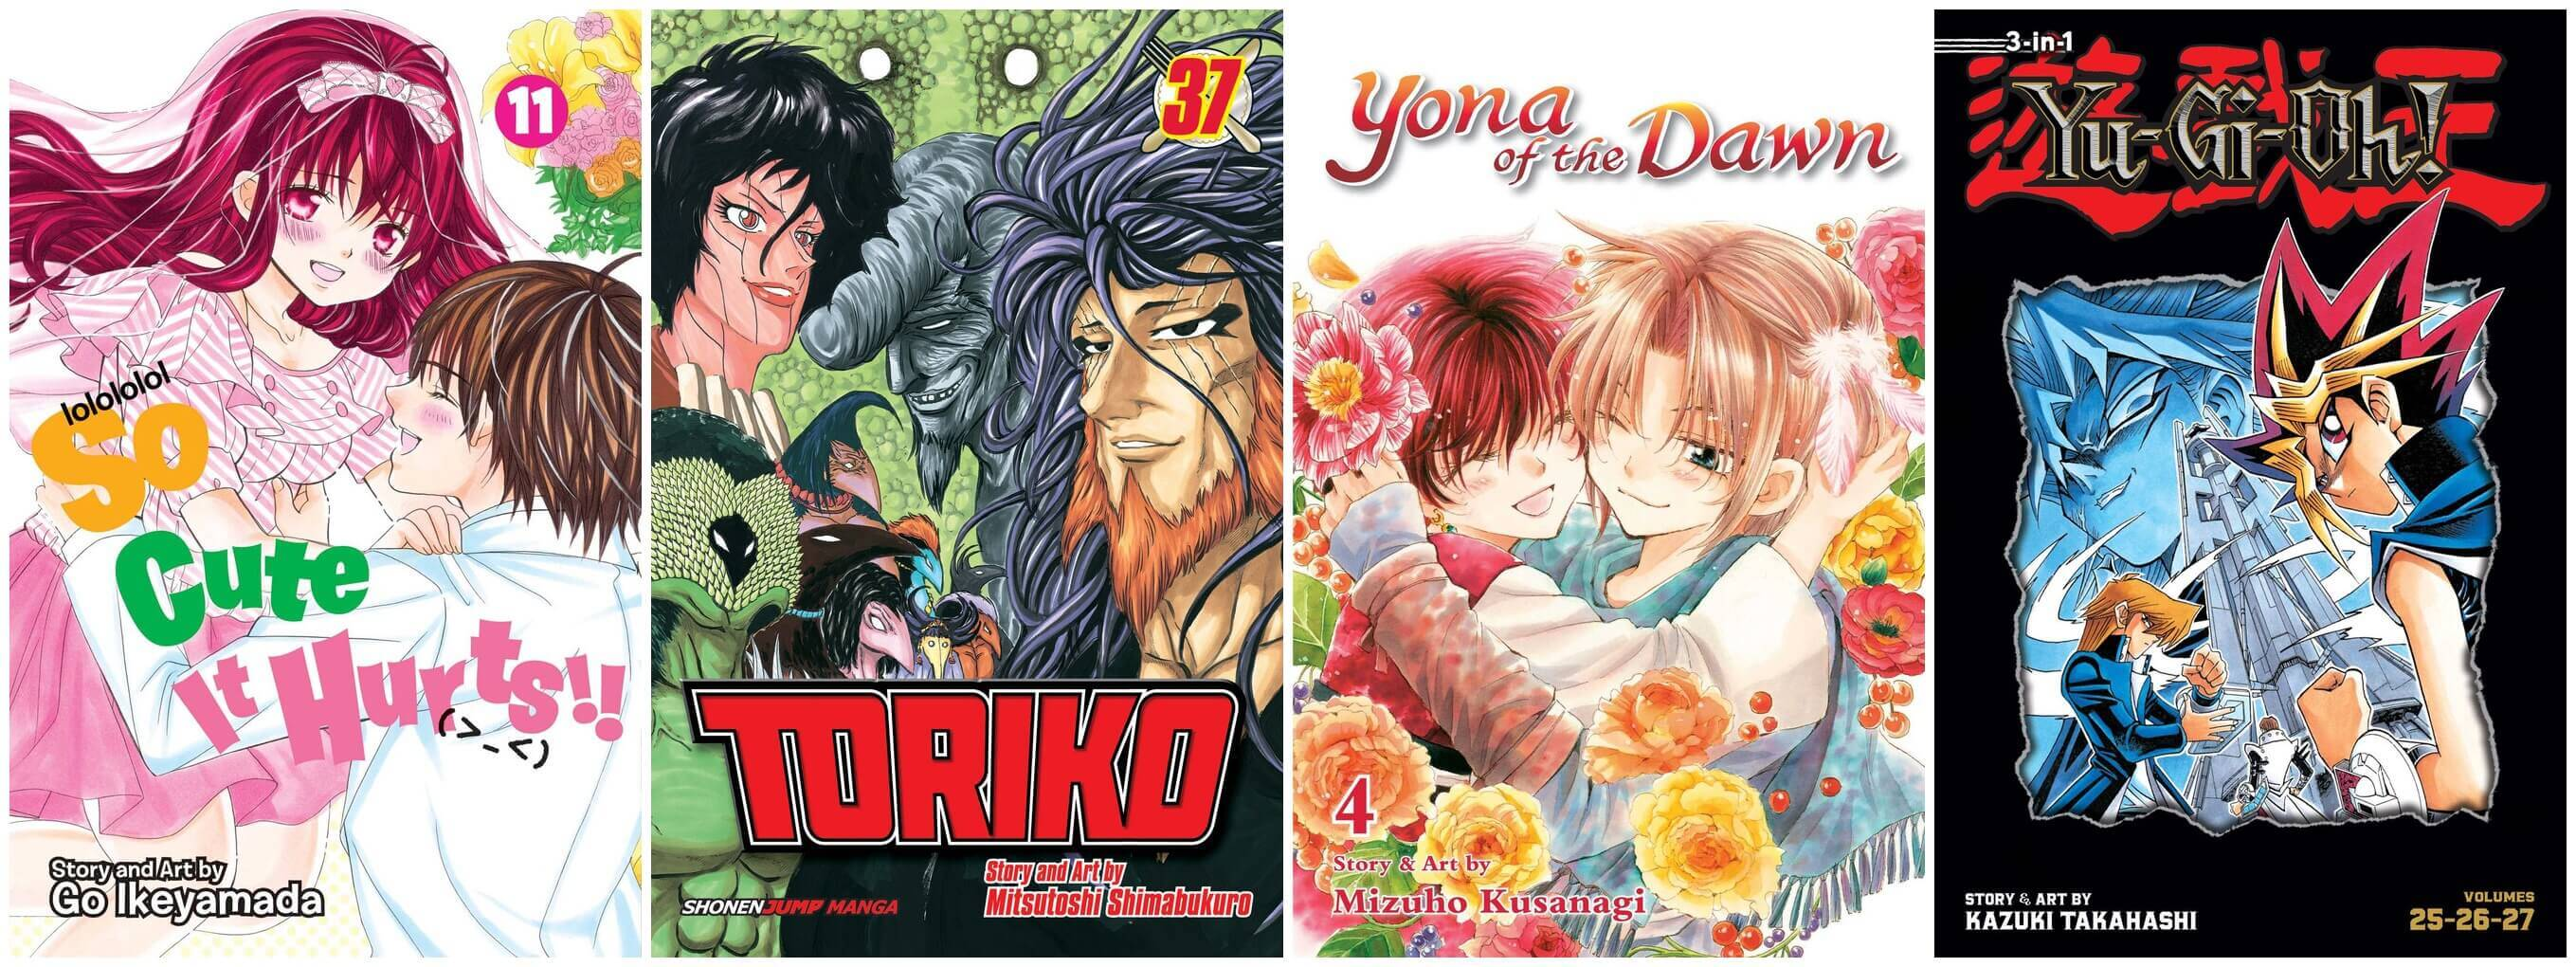 February 2017 Manga Releases Covers for So Cute It Hurts, Toriko, Yona of the Dawn, and Yu-Gi-Oh.